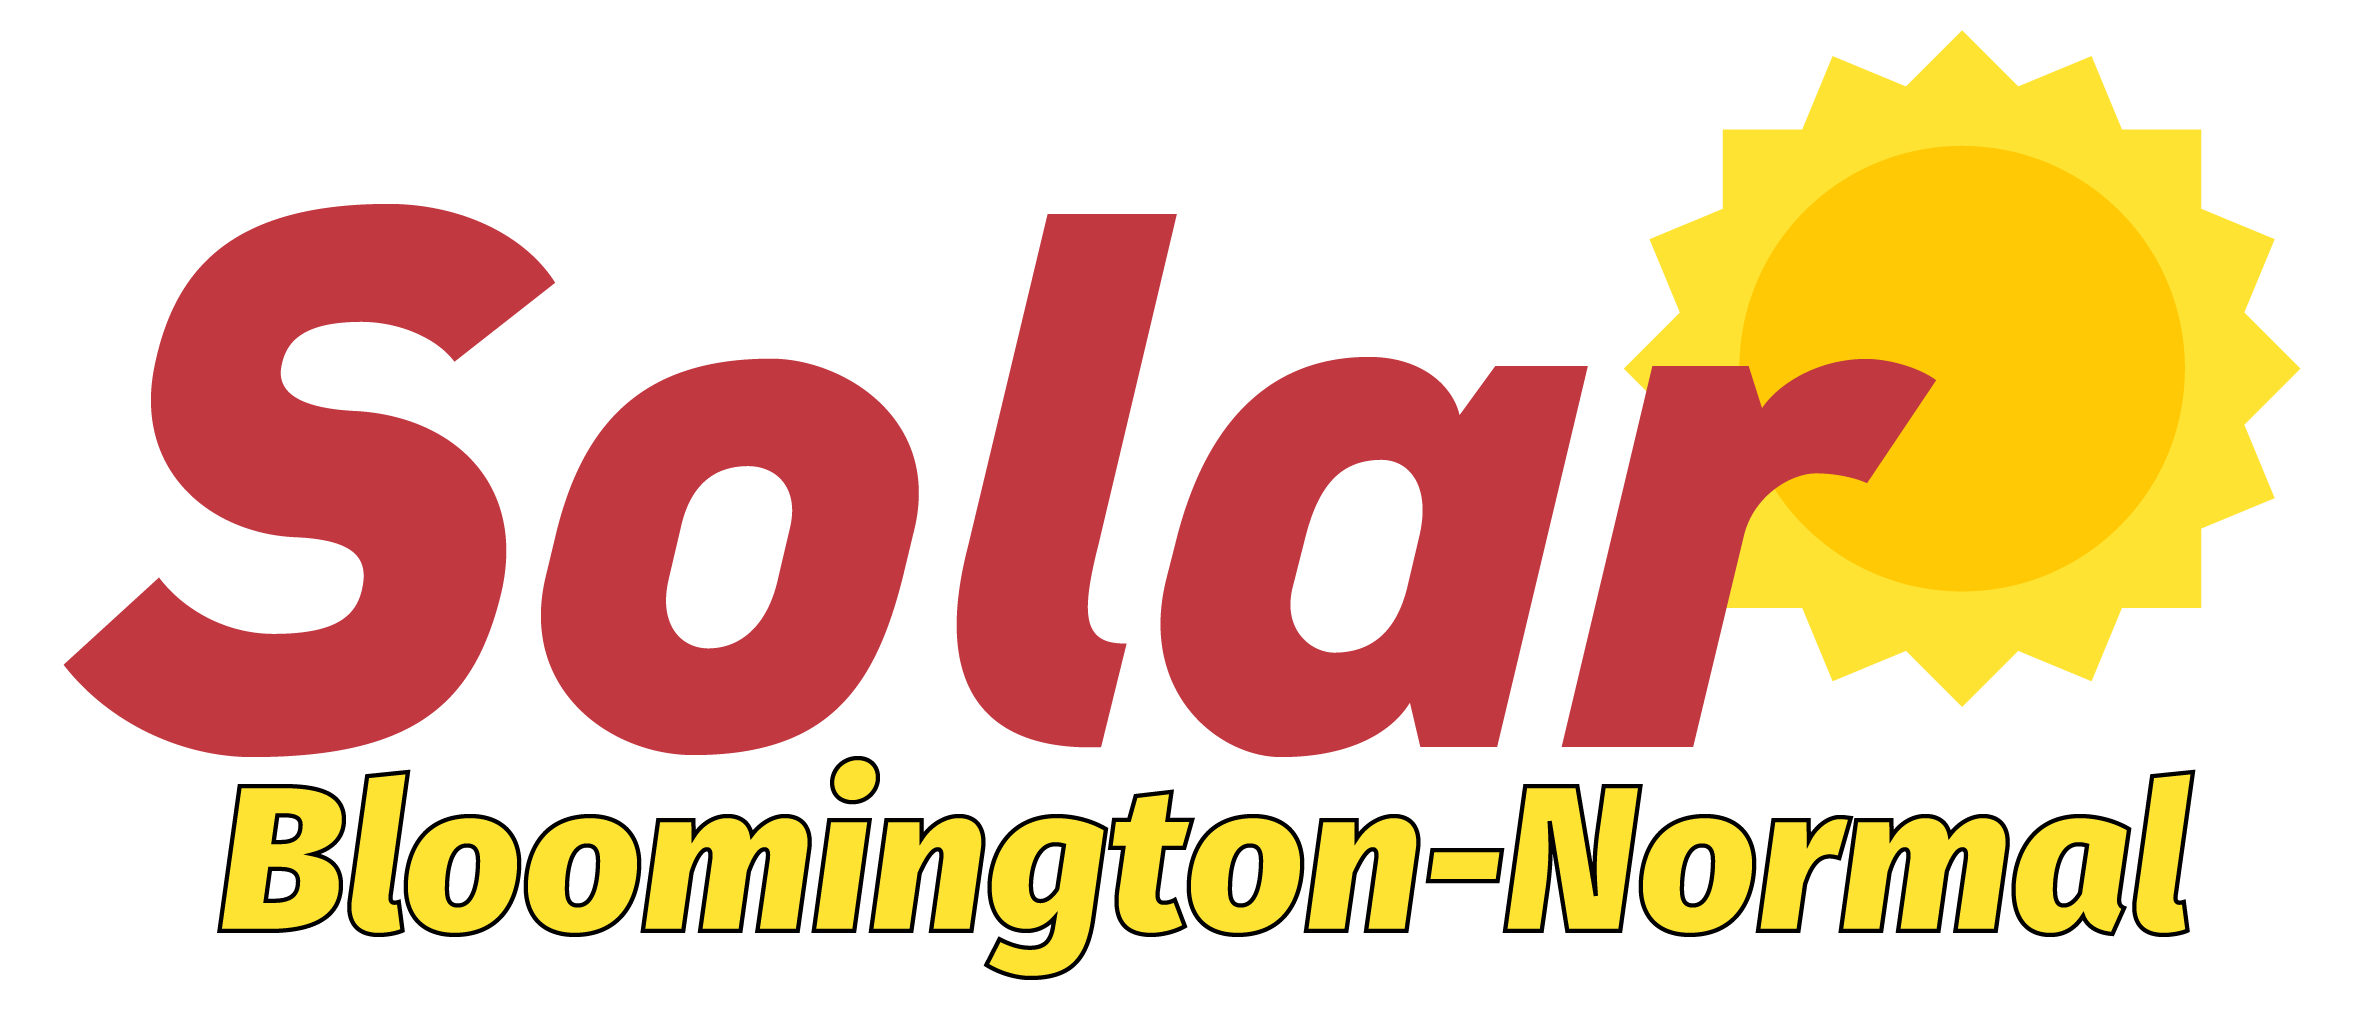 bloomington normal dating Bloomington-normal is a double college town with illinois state university on one side and illinois wesleyan university on the other you would think there are a.